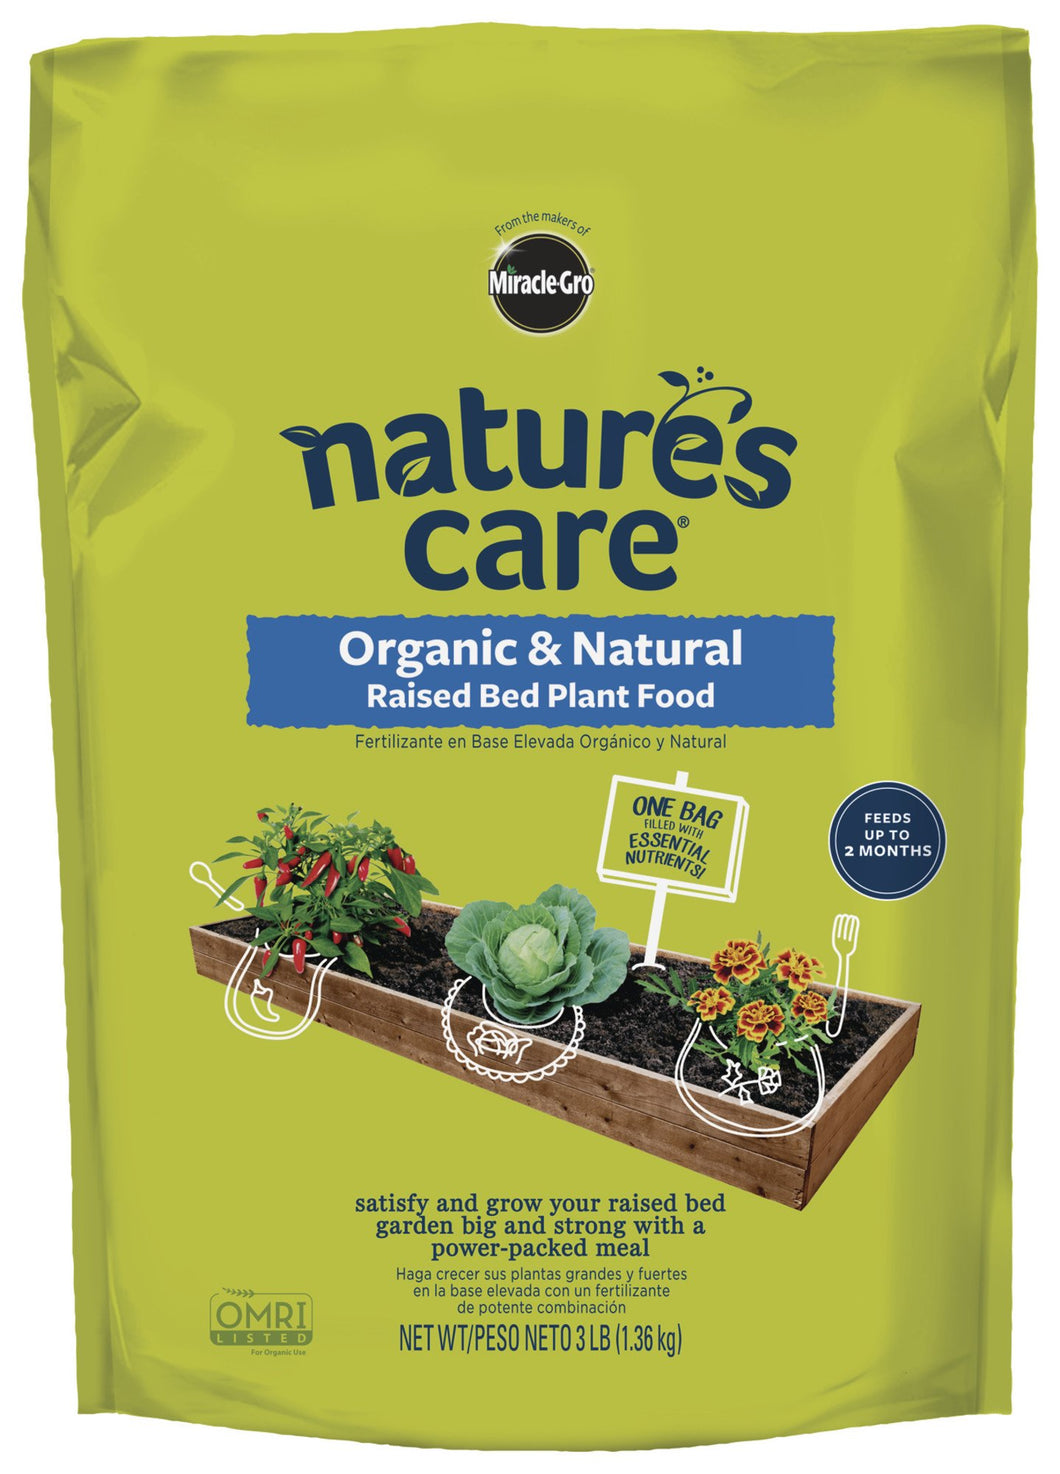 Nature's Care Organic & Natural Raised Bed Plant Food - myorganicals